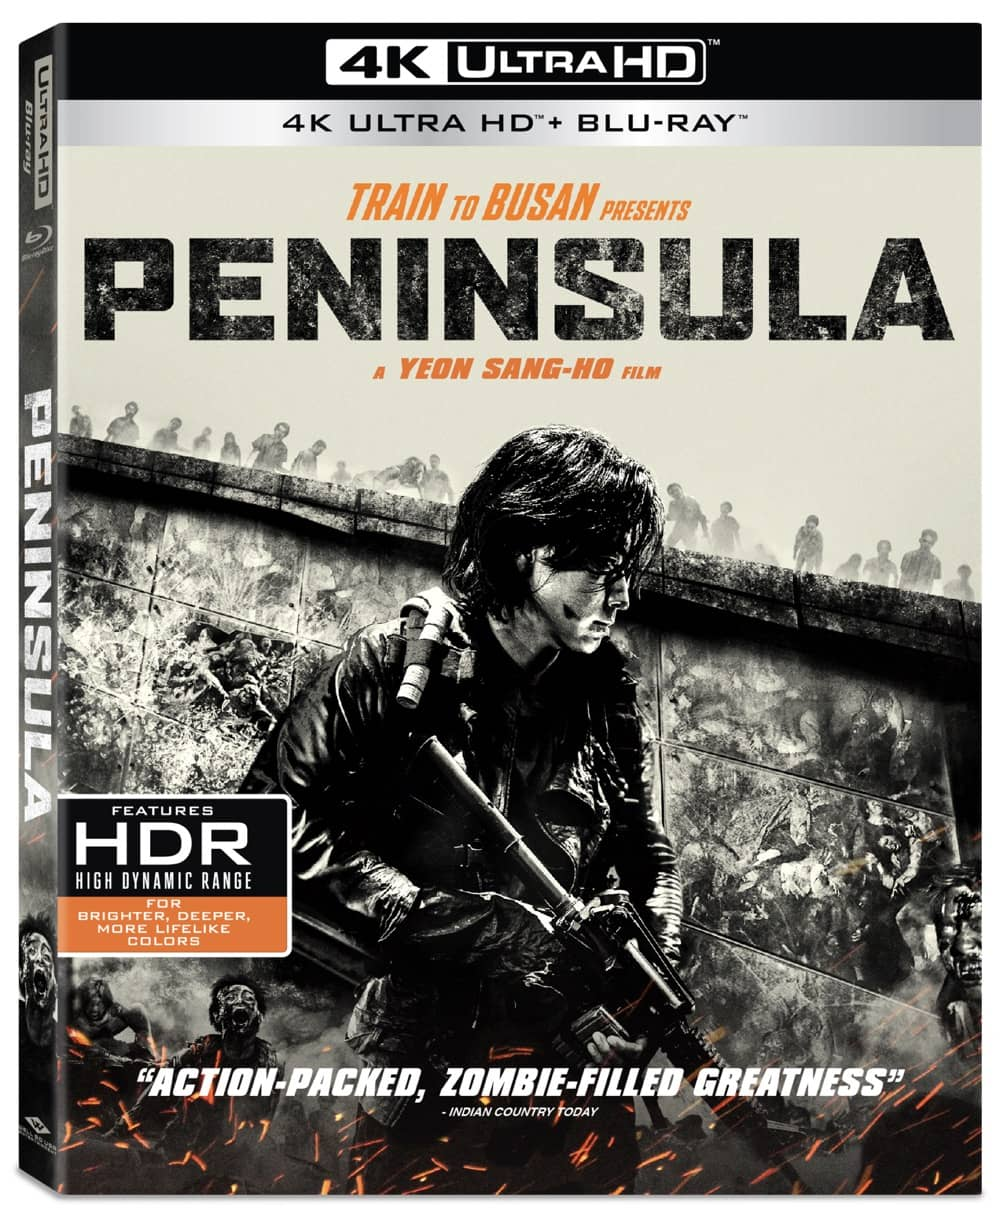 Train to Busan Presents PENINSULA 4K Cover